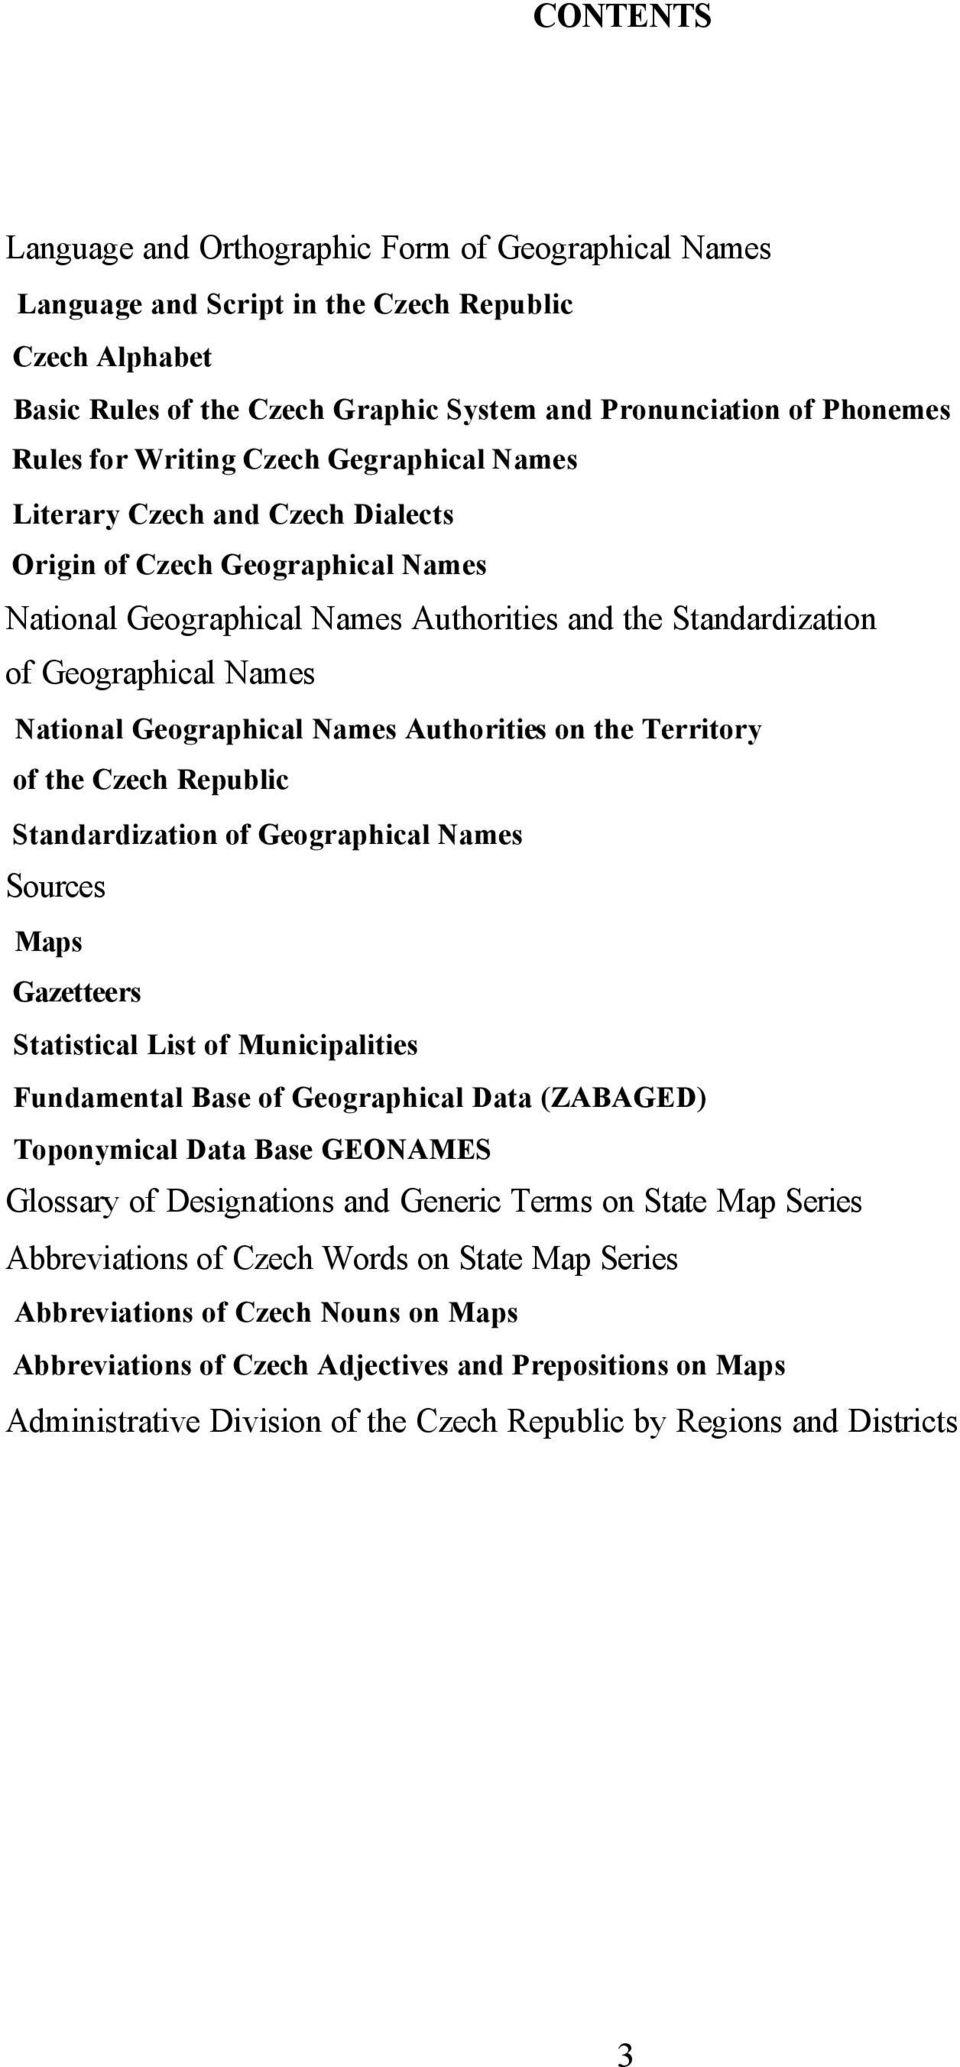 Geographical Names Authorities on the Territory of the Czech Republic Standardization of Geographical Names Sources Maps Gazetteers Statistical List of Municipalities Fundamental Base of Geographical